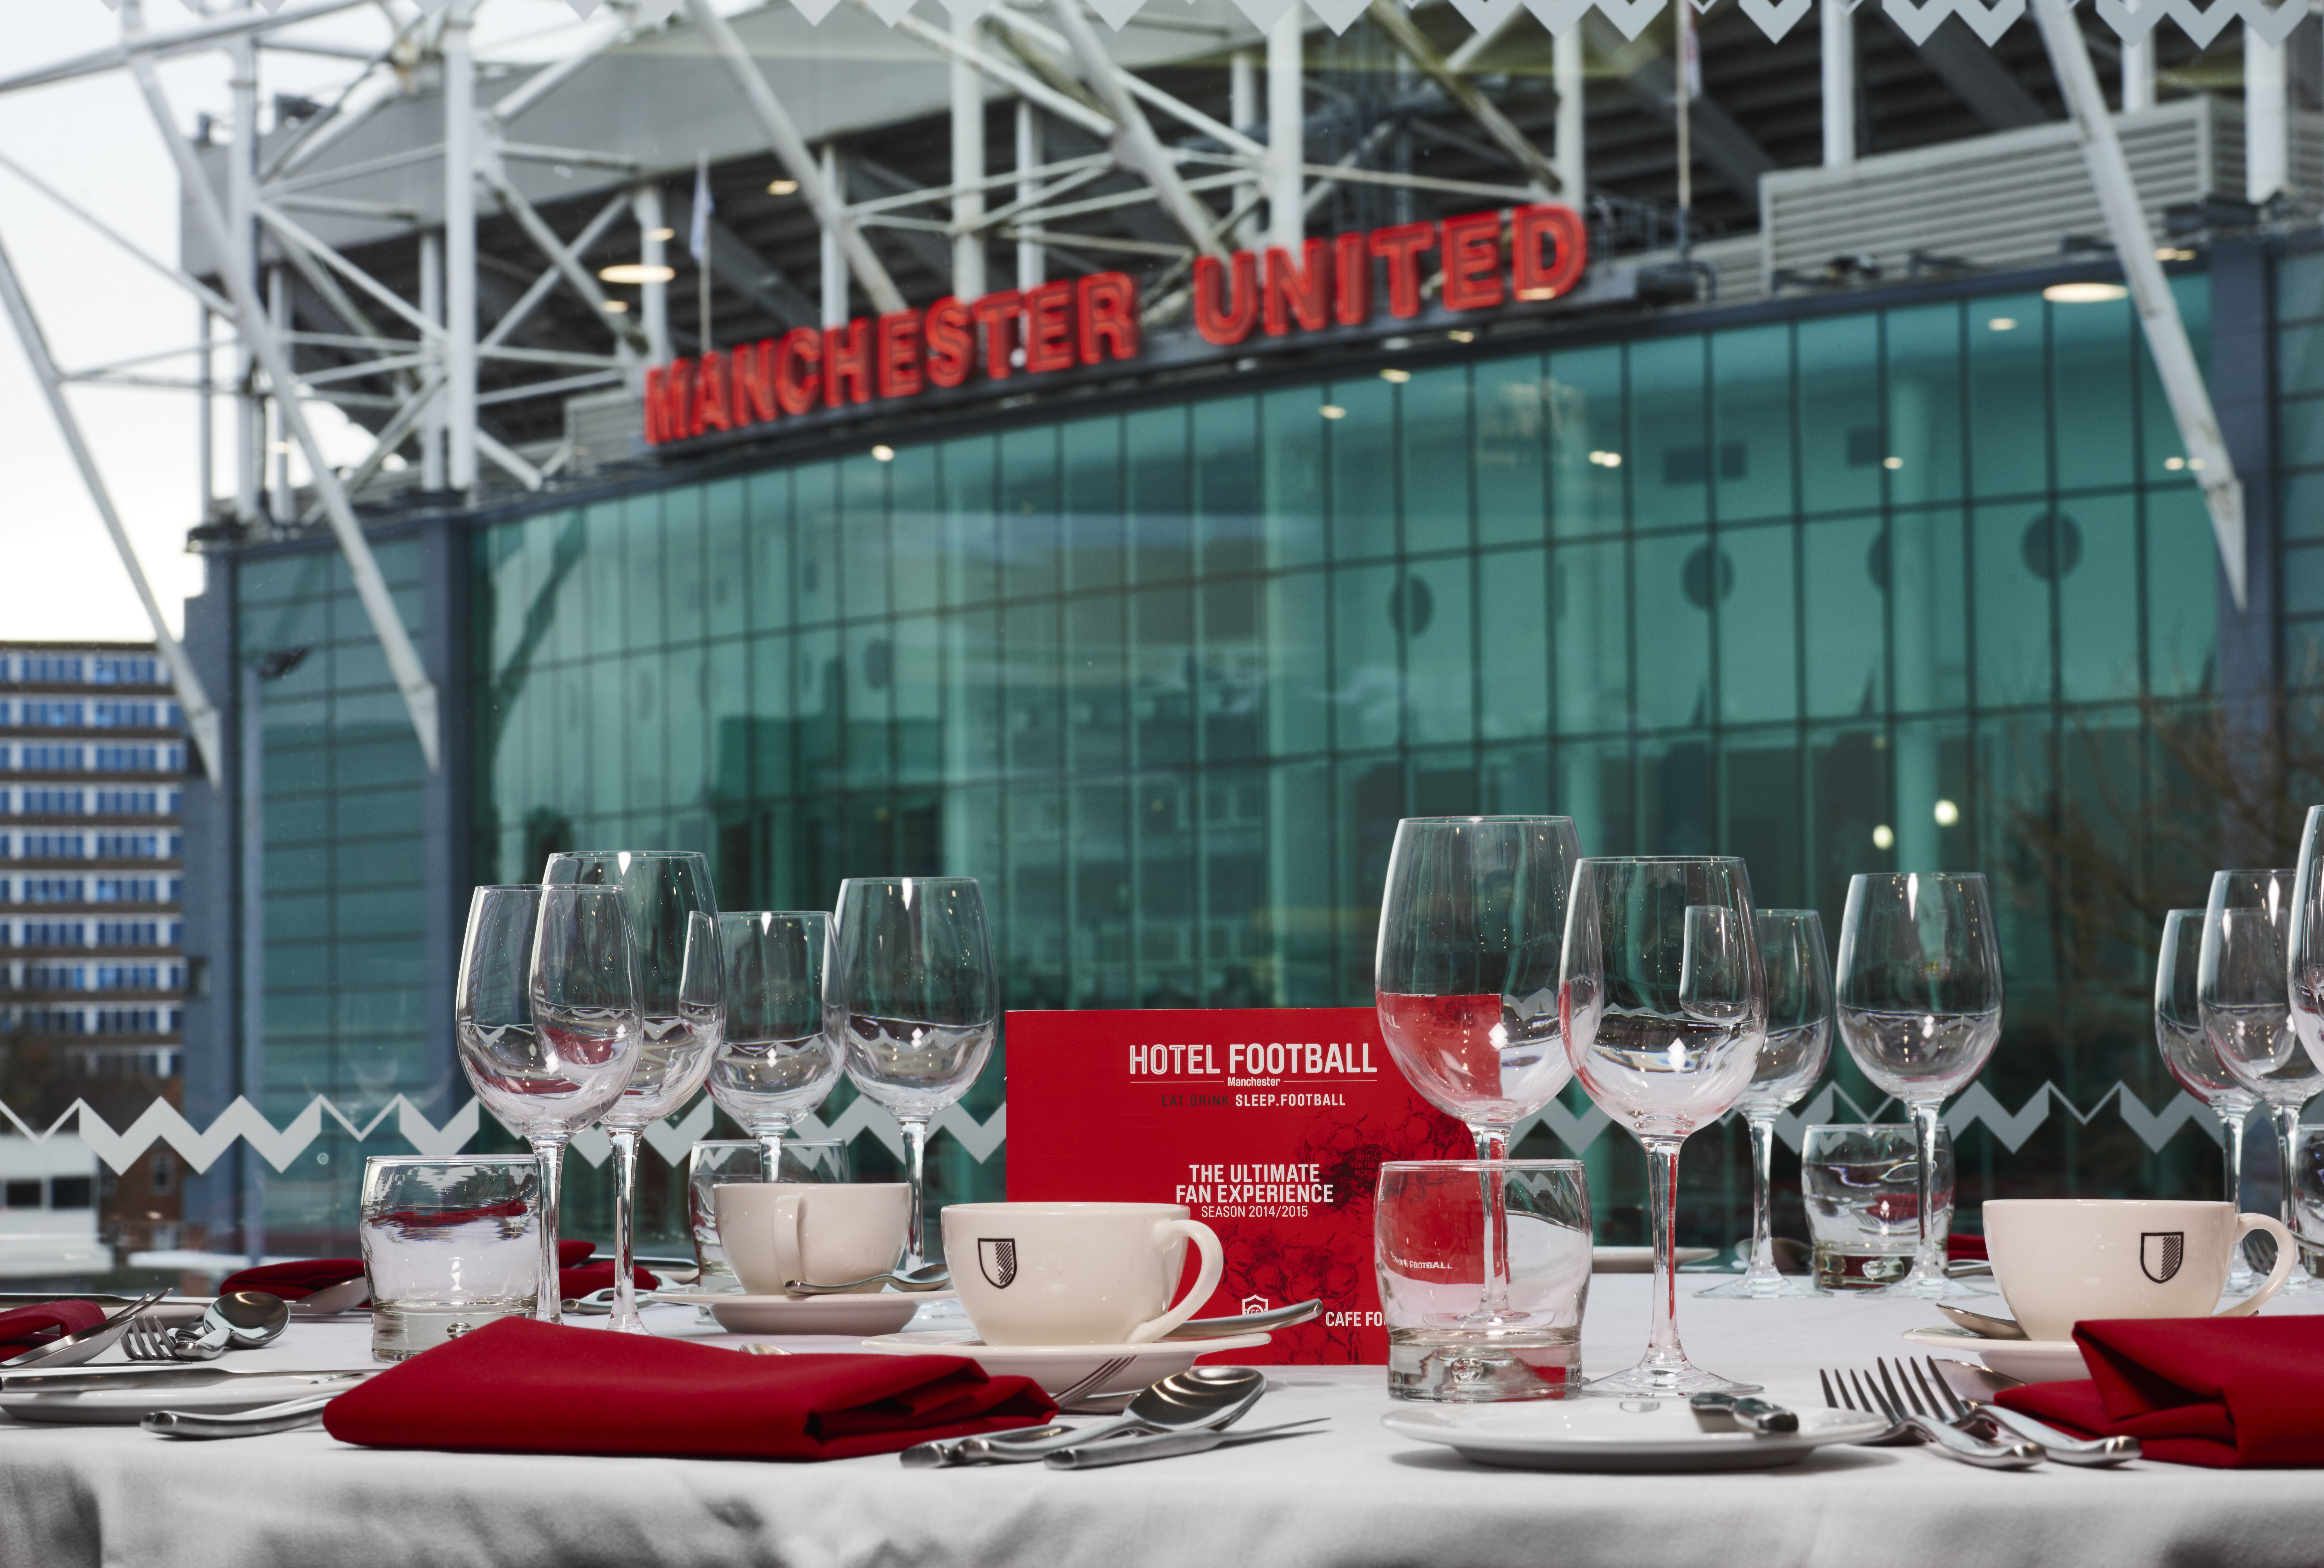 Former Manchester United stars Ryan Giggs and Gary Neville set to kick-off Hotel Football